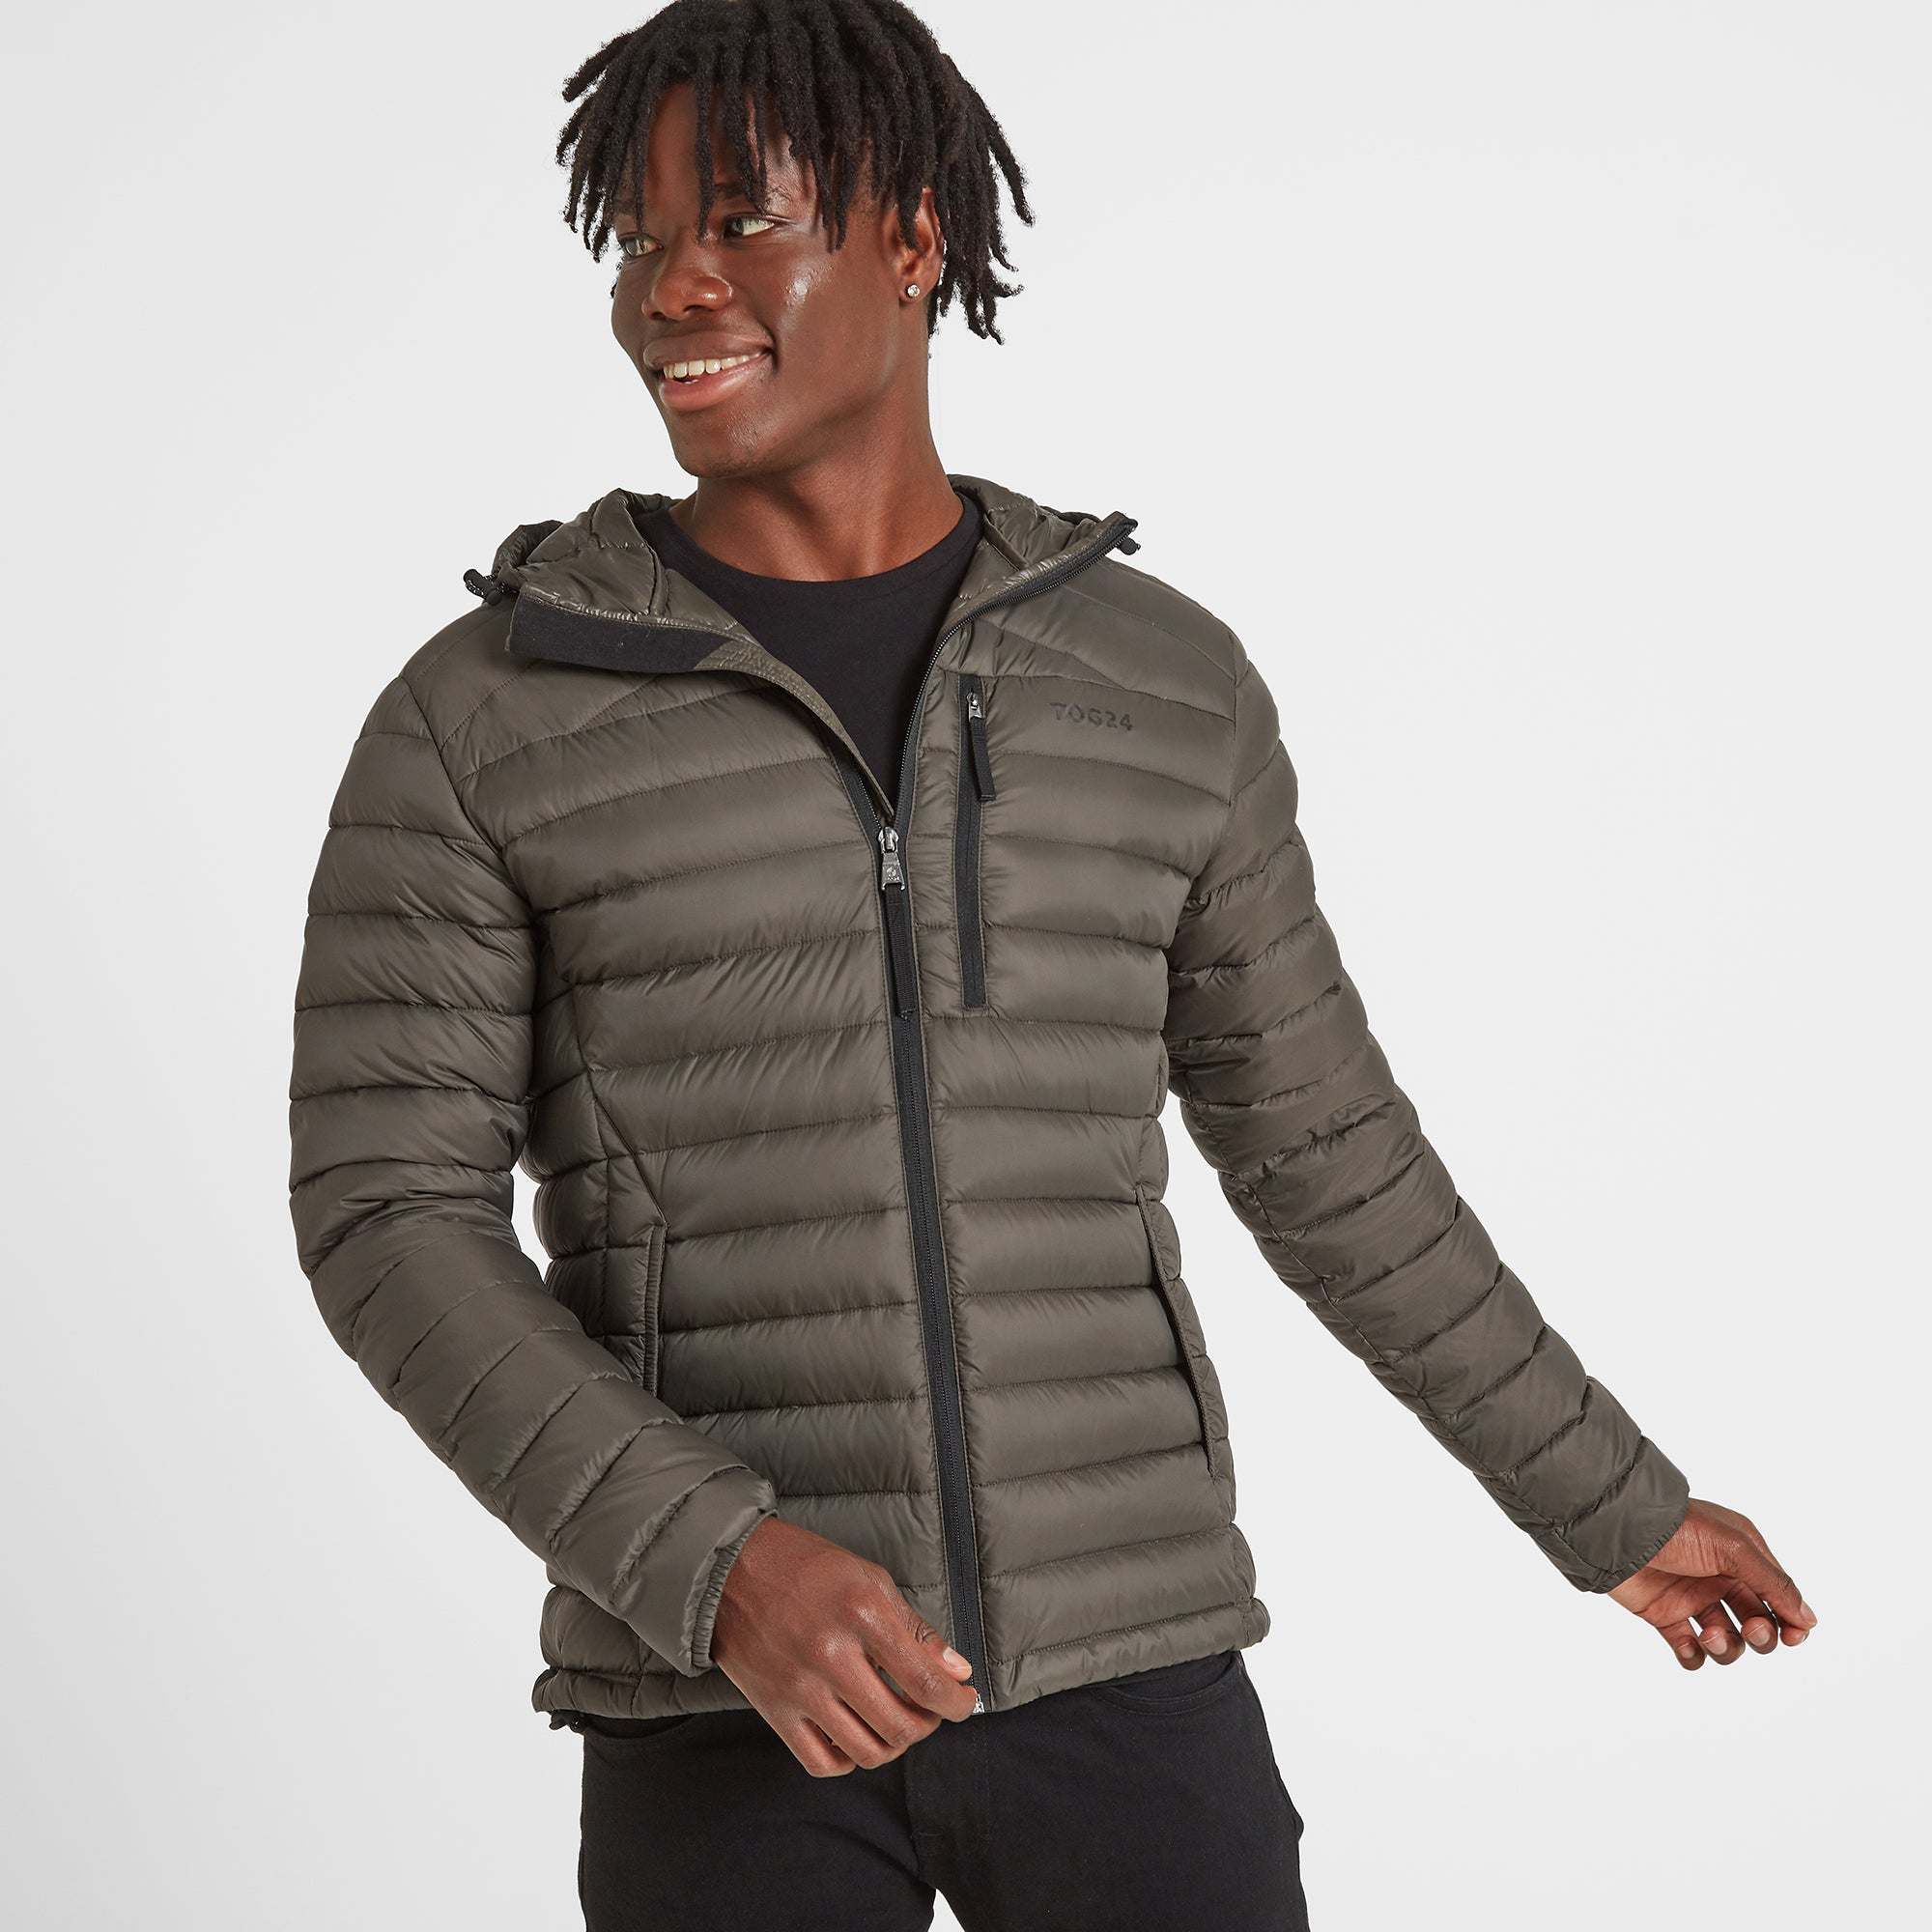 Drax Mens Hooded Down Jacket - Khaki